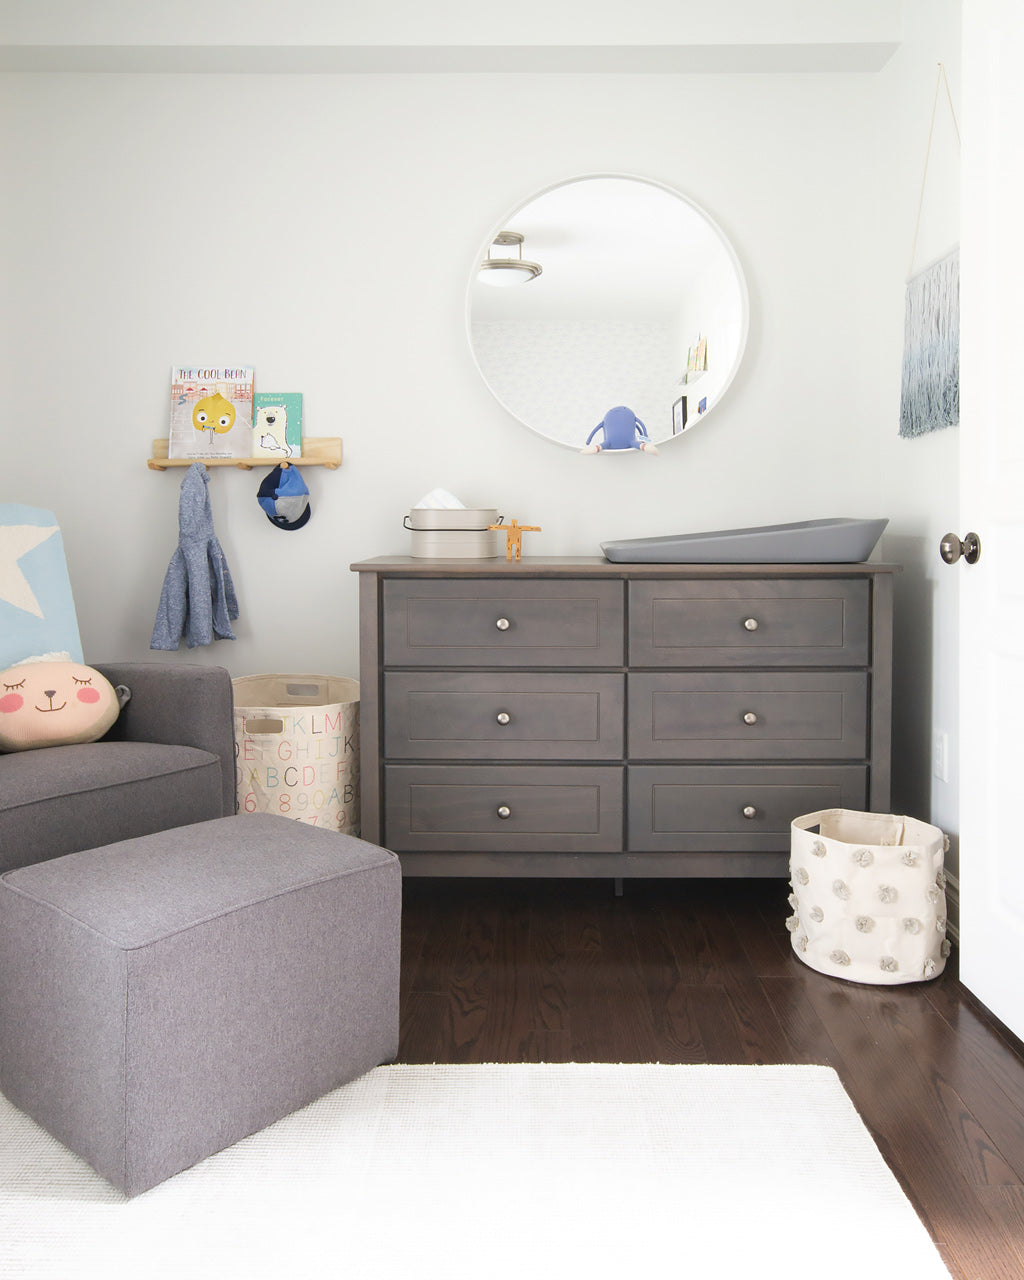 Nursery rocking chair and dresser in neutral grey color palette in white coastal theme nursery for baby boy